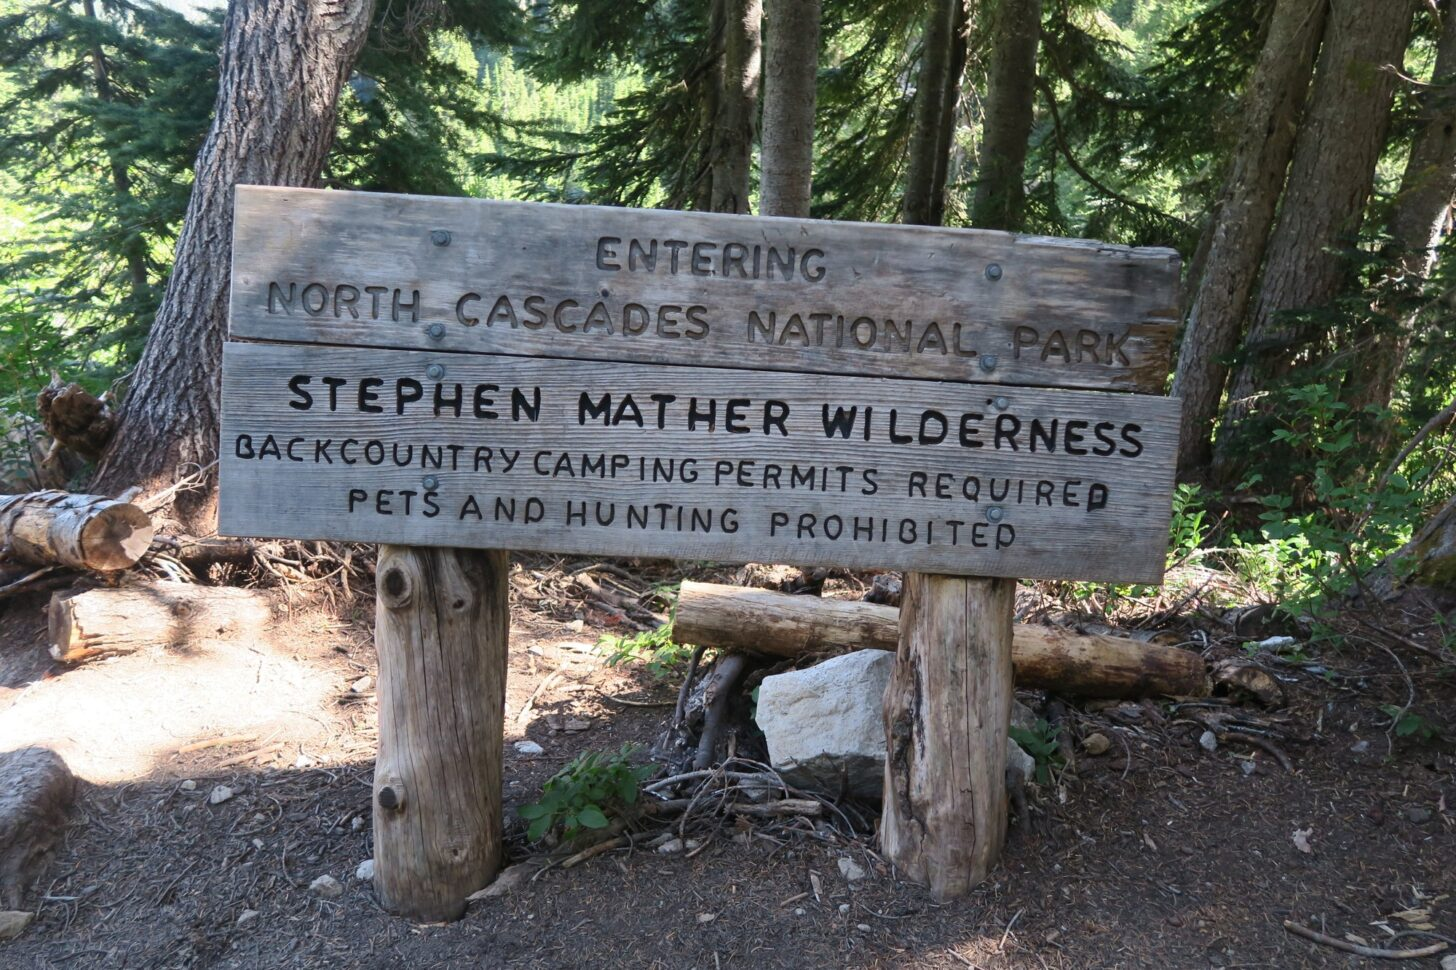 """A sign that reads """"Entering North Cascades National Park, Stephen Mather Wilderness: Backcountry camping permits required, pets and hunting prohibited."""""""